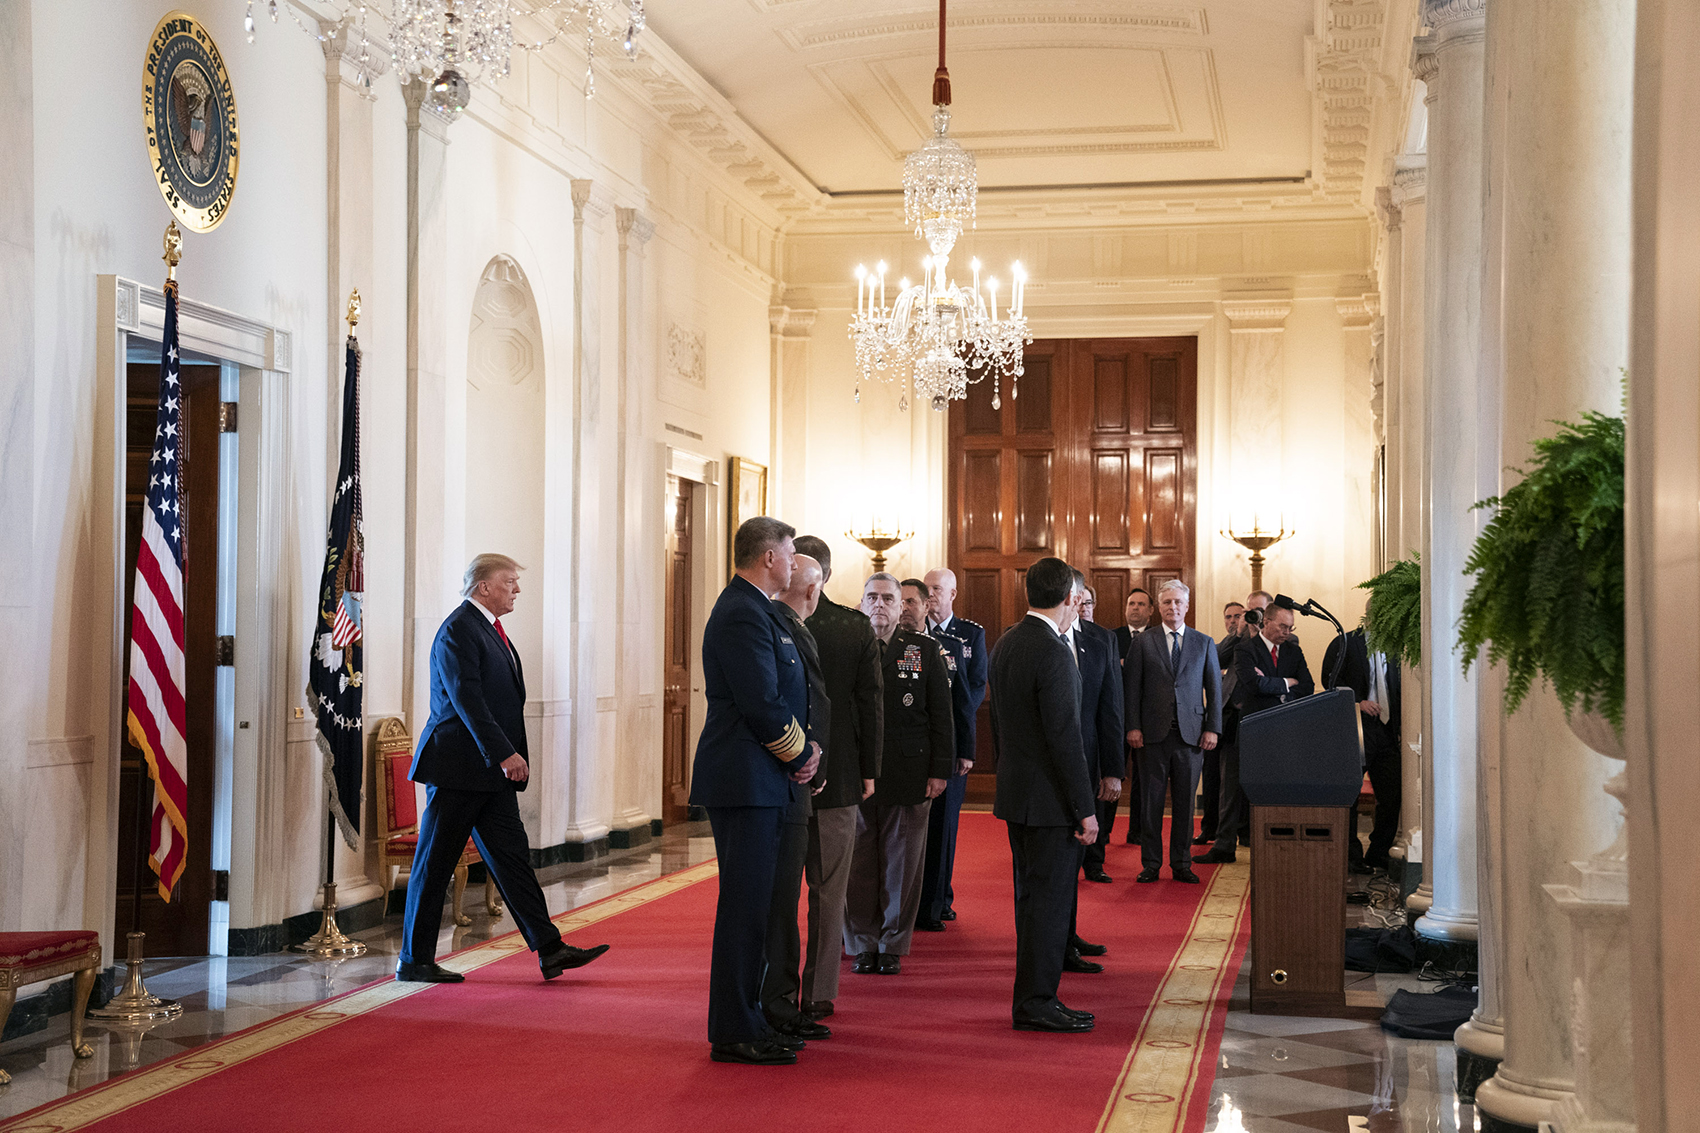 Trump preparing to address the Iranian missile strikes against US military bases in Iraq, surrounded by military personnel and White House officials. Photo courtesy of The White House.